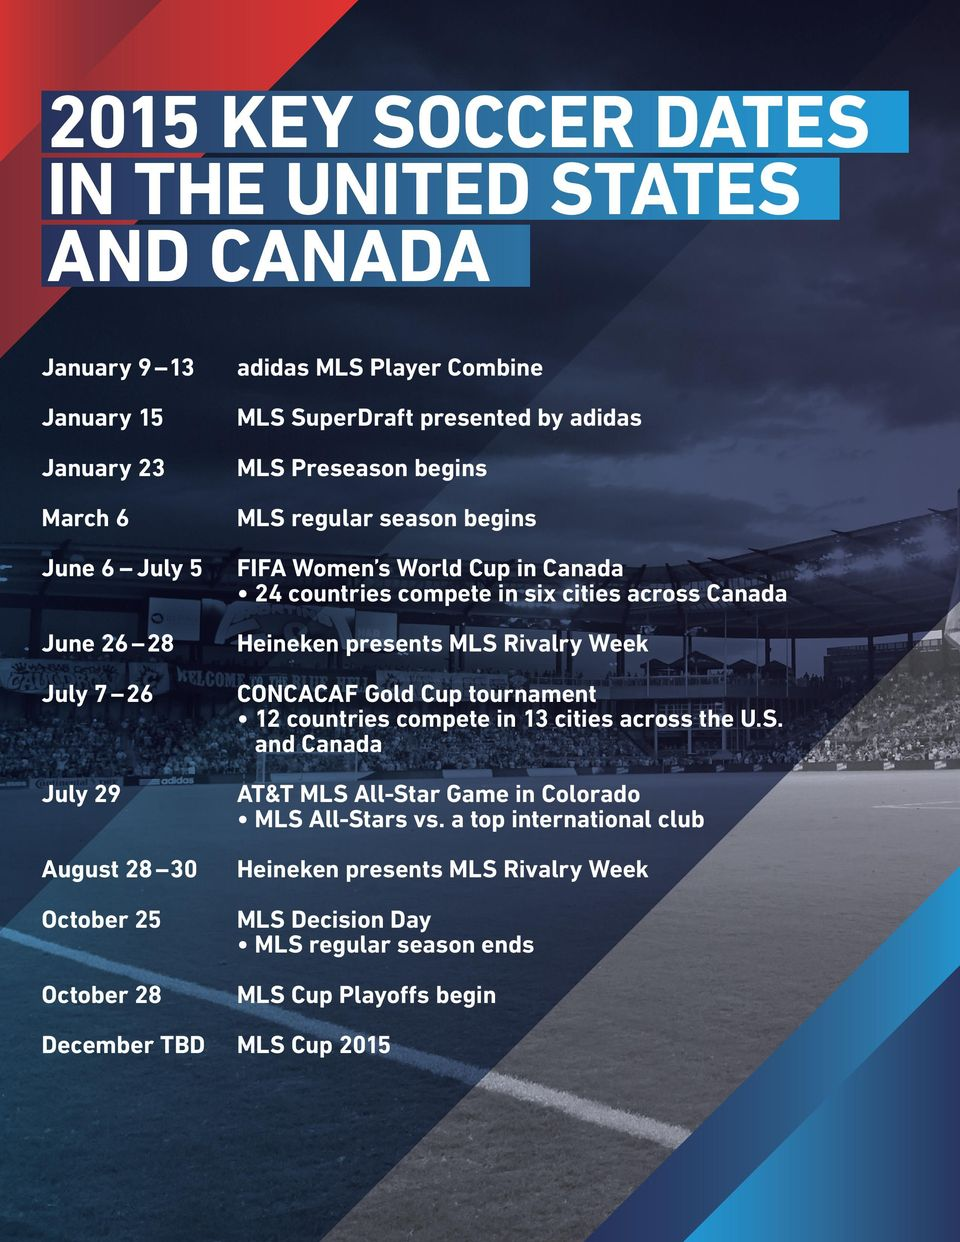 compete in six cities across Canada Heineken presents MLS Rivalry Week CONCACAF Gold Cup tournament 12 countries compete in 13 cities across the U.S. and Canada AT&T MLS All-Star Game in Colorado MLS All-Stars vs.